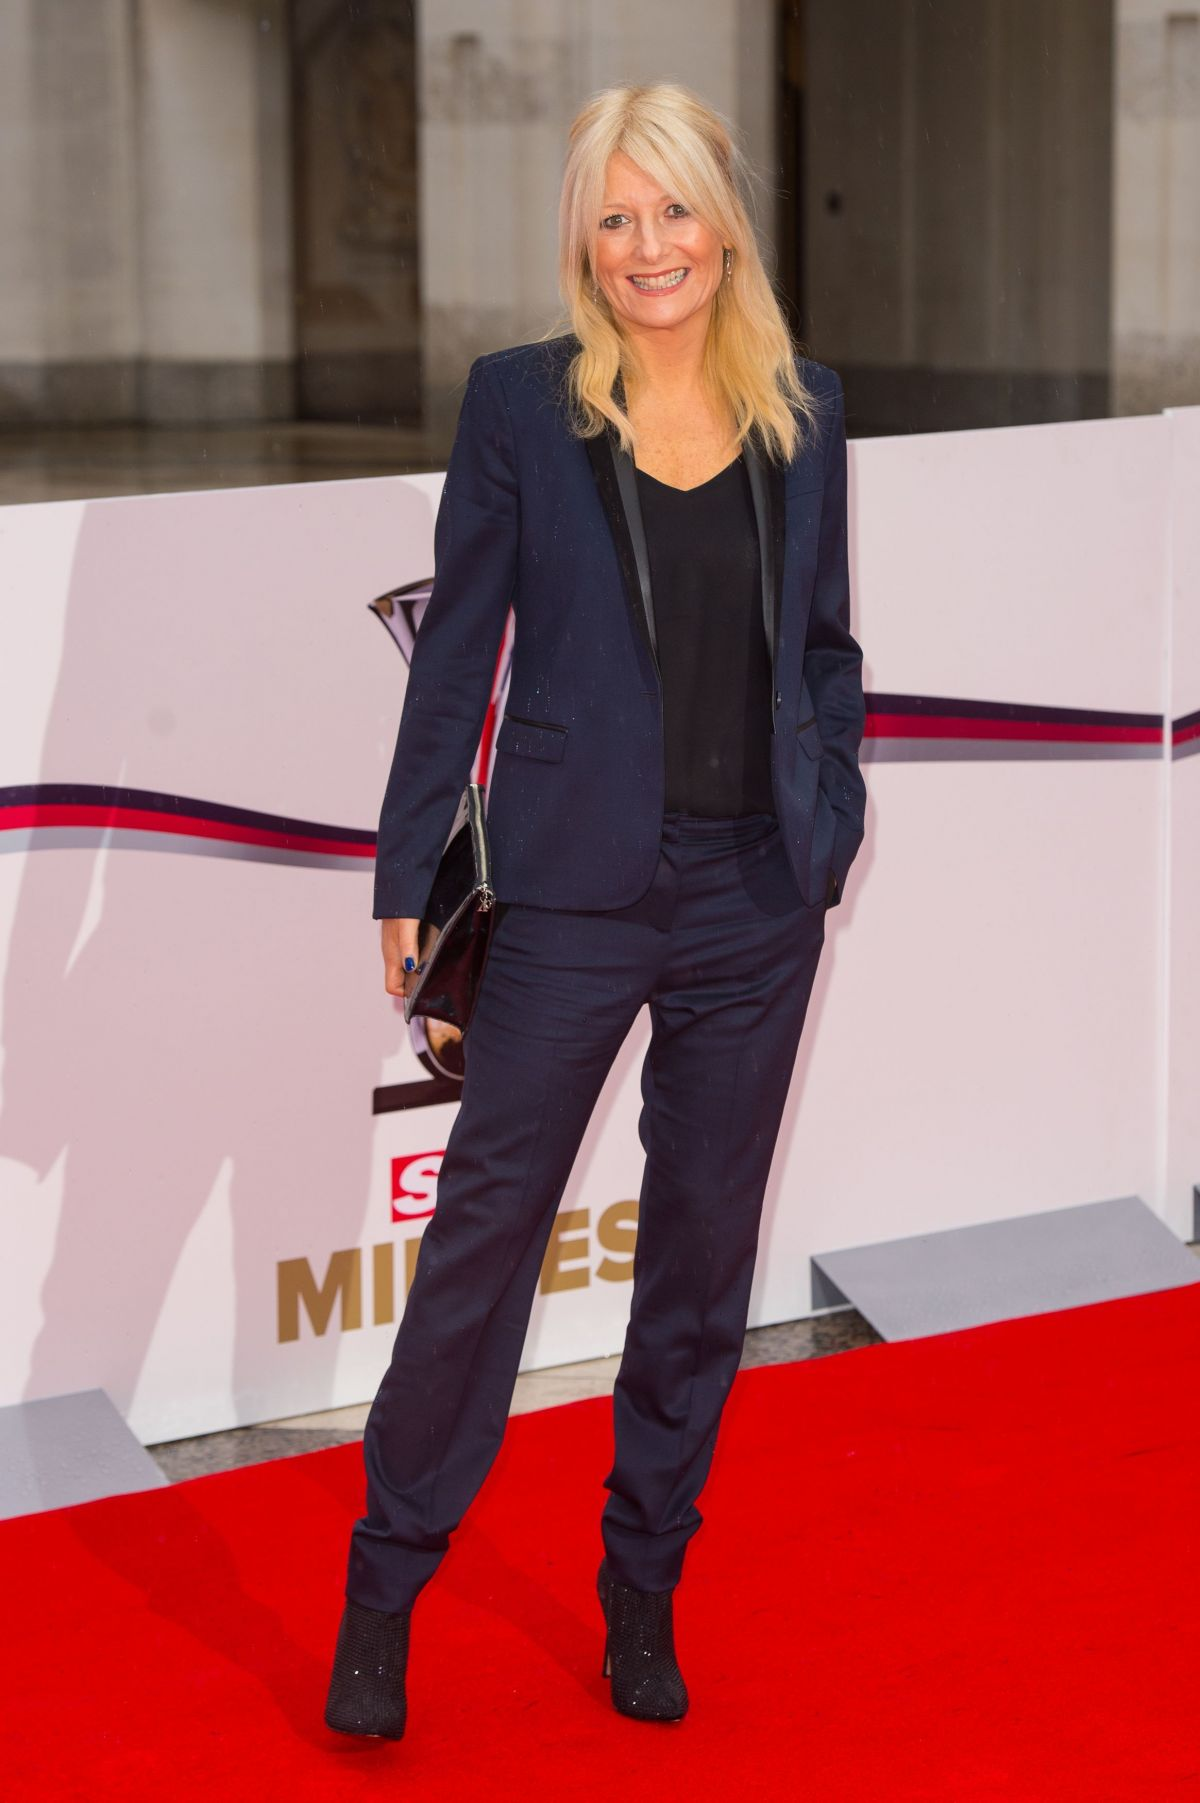 GABY ROSLIN at The Sun Military Awards in London 01/22/2016